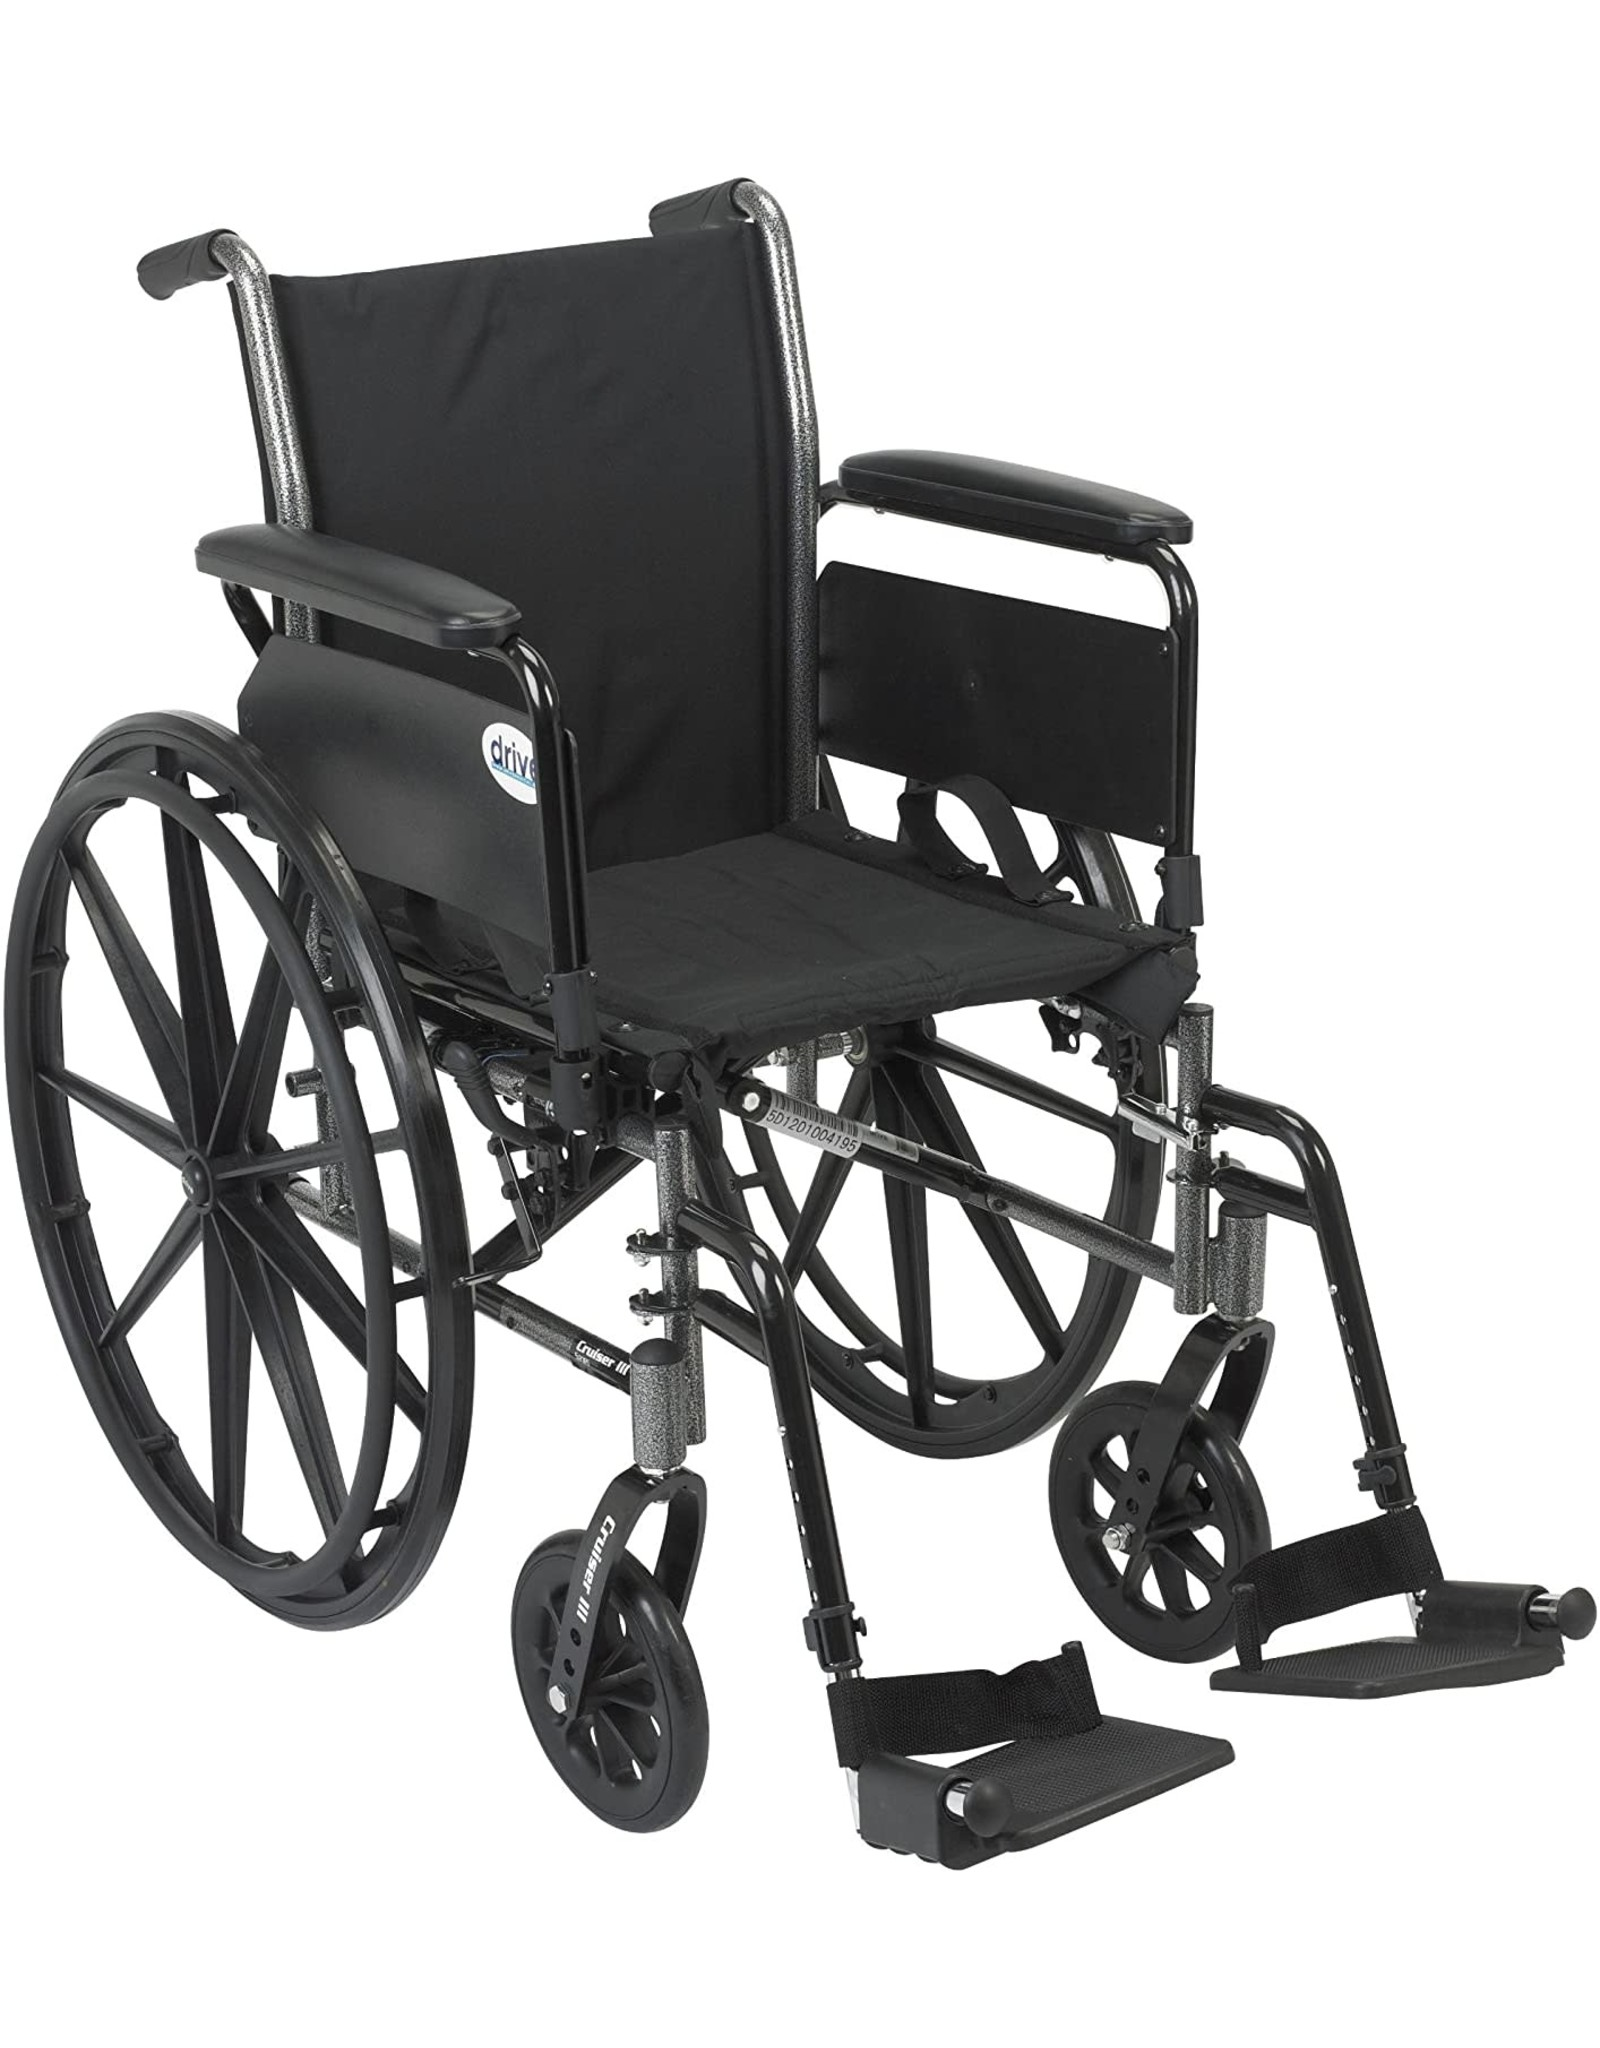 Drive Medical Drive Medical Cruiser III Light Weight Wheelchair with Various Flip Back Arm Styles and Front Rigging Options, Flip Back Removable Full Arms/Swing away Footrests, Black, 20 Inch